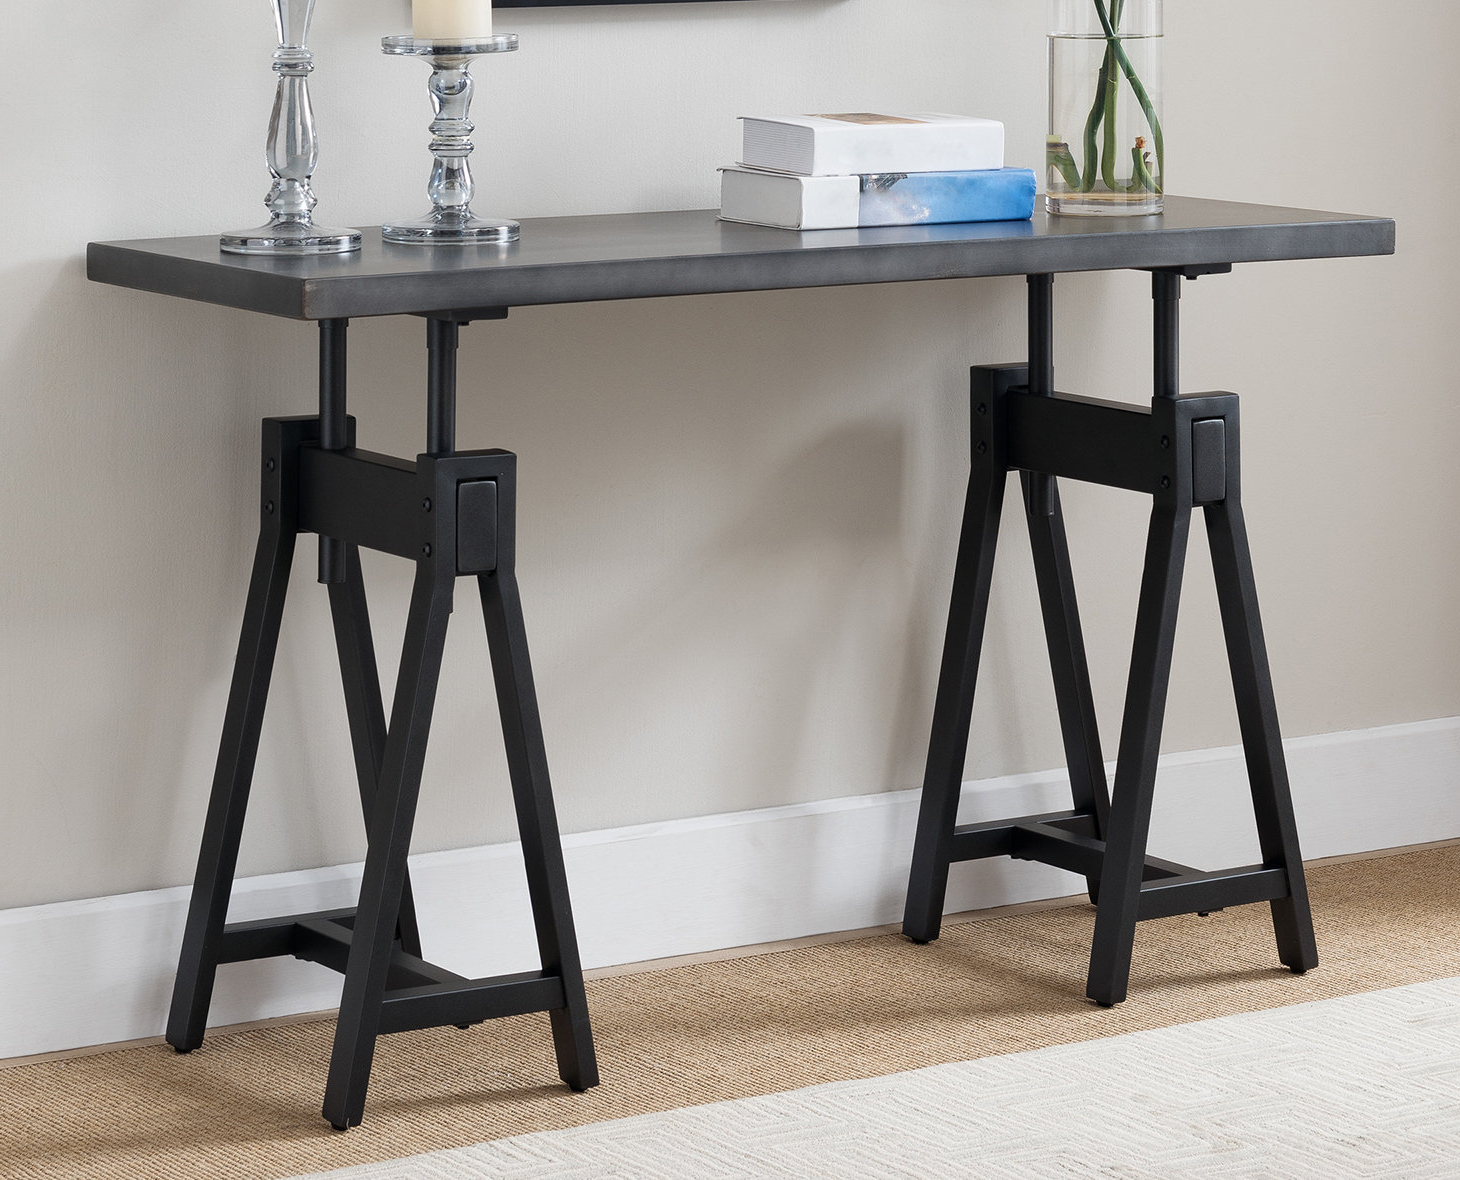 Wayfair Pertaining To Most Current Tobias Media Console Tables (Gallery 2 of 20)